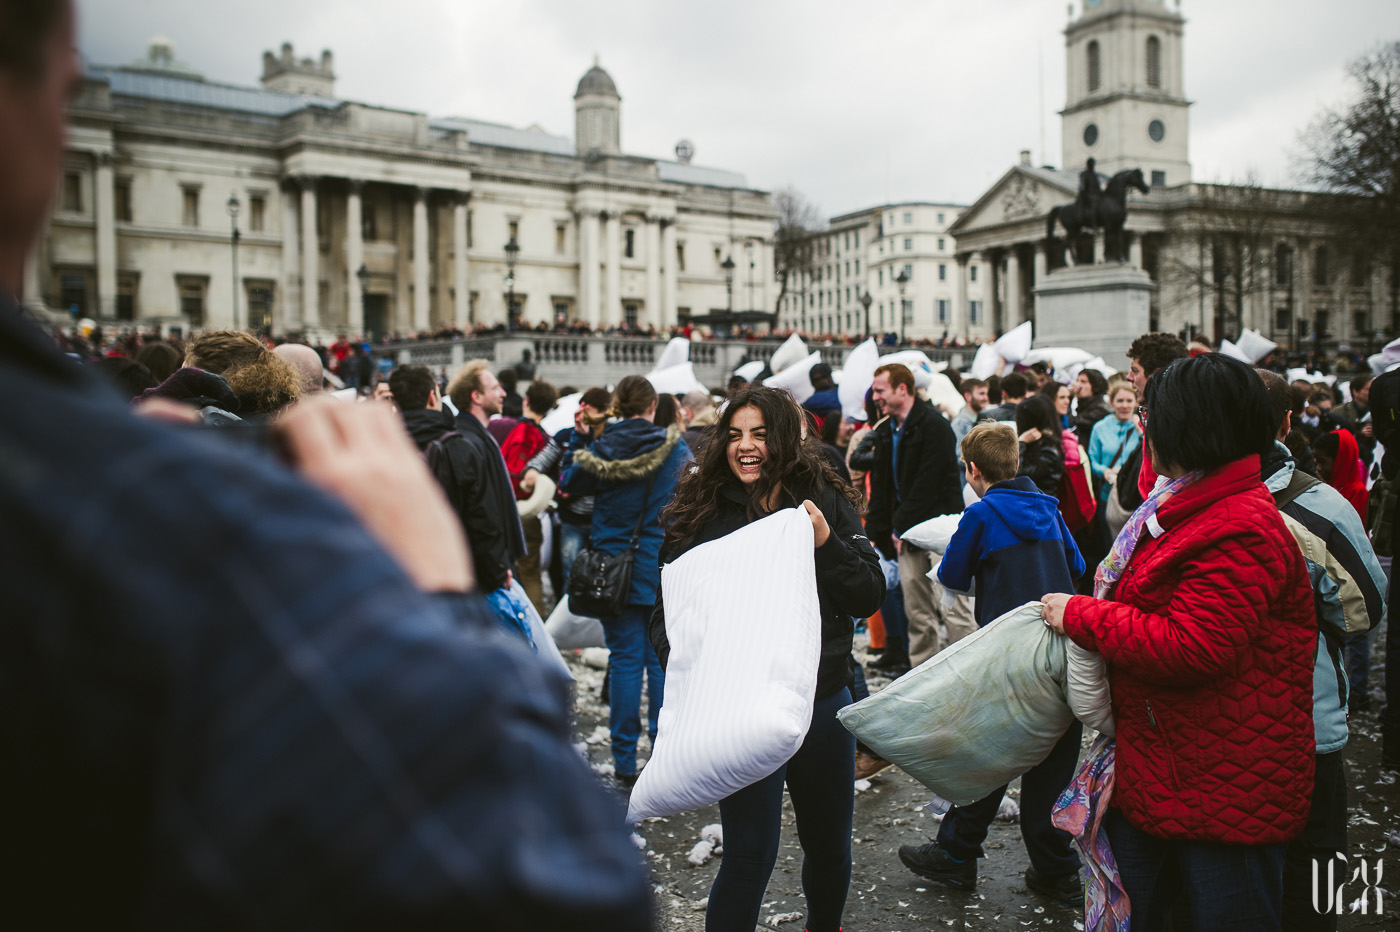 International Pillow Fight Day In London 2015 Street Photography Pagalviu Musis 34